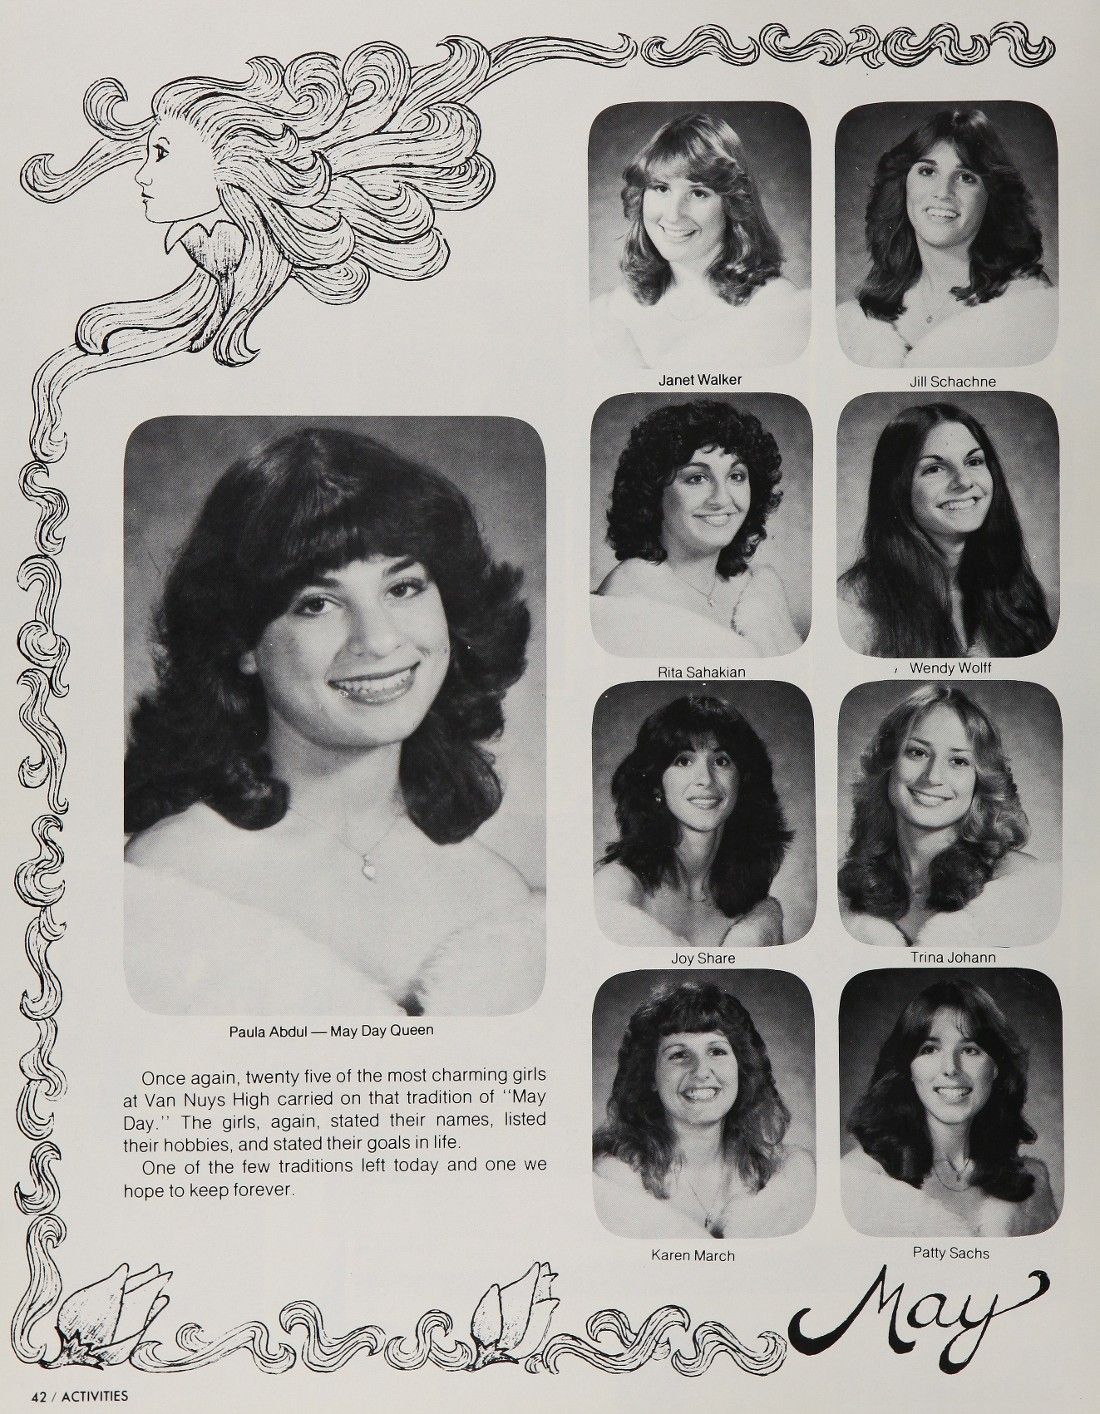 high school yearbook picture of paula abdul from nuys high